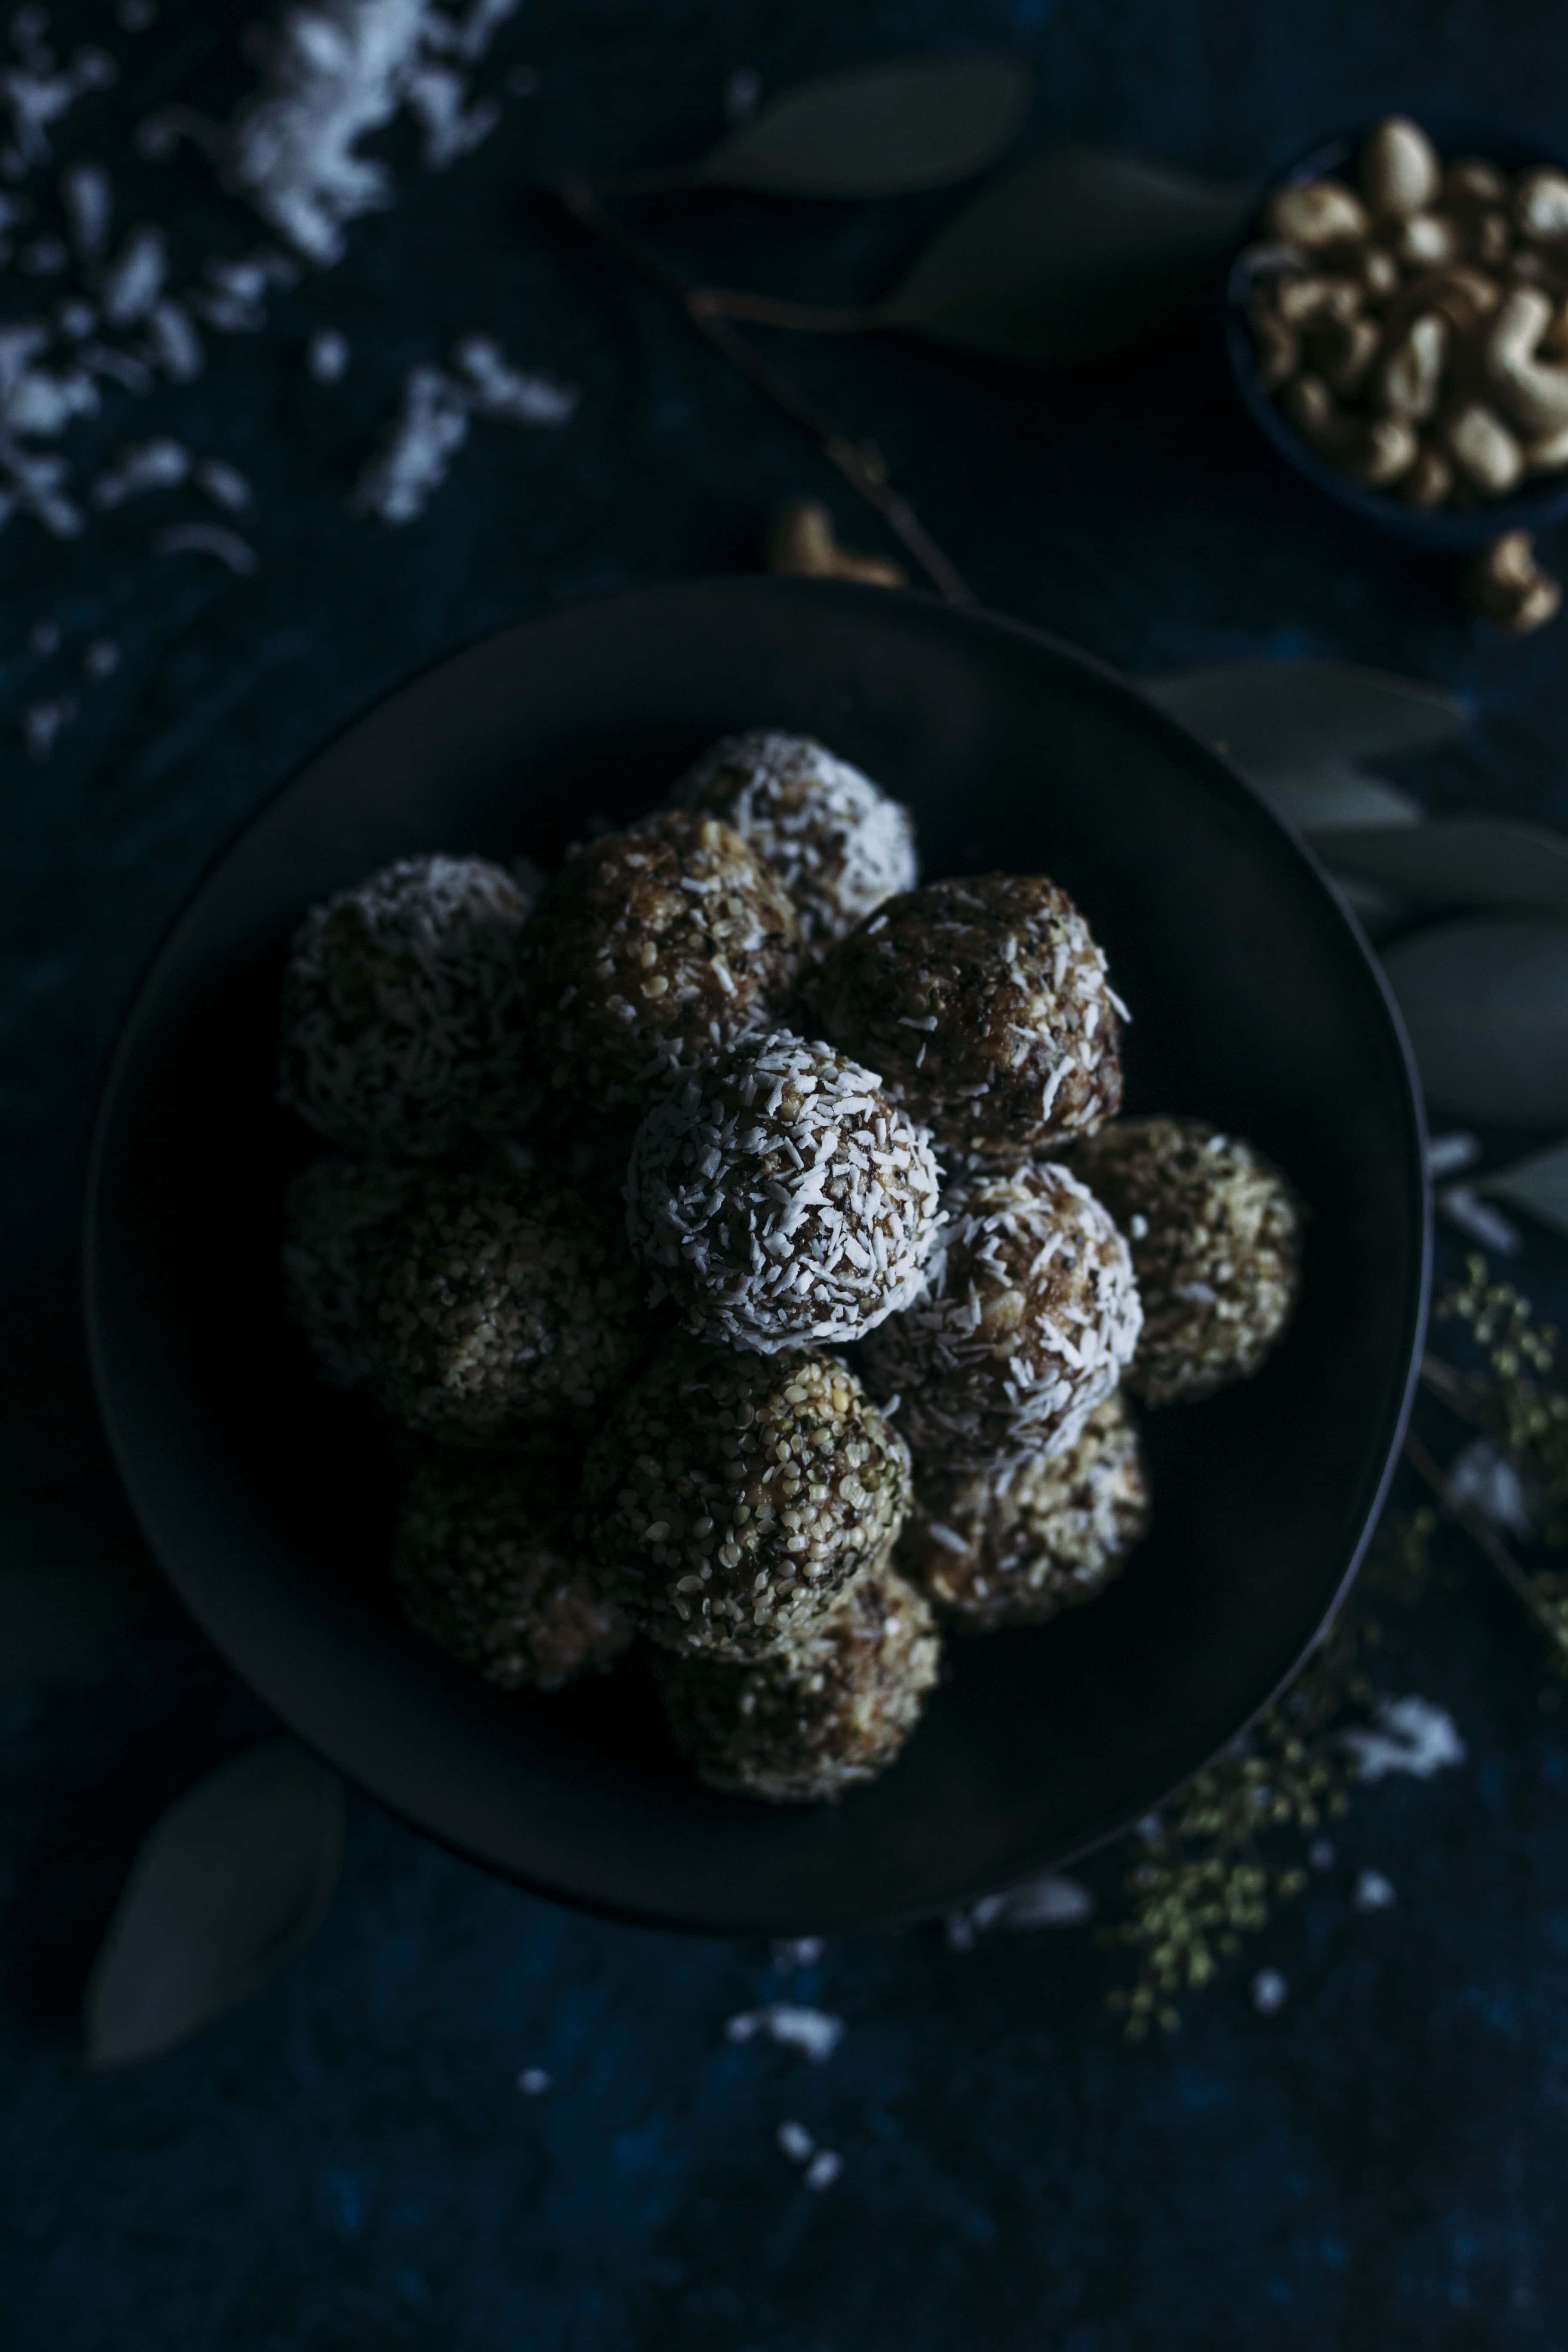 Salted Caramel Coconut Balls | These guilt-free balls are a perfectly sweet and portable snack | thealmondeater.com